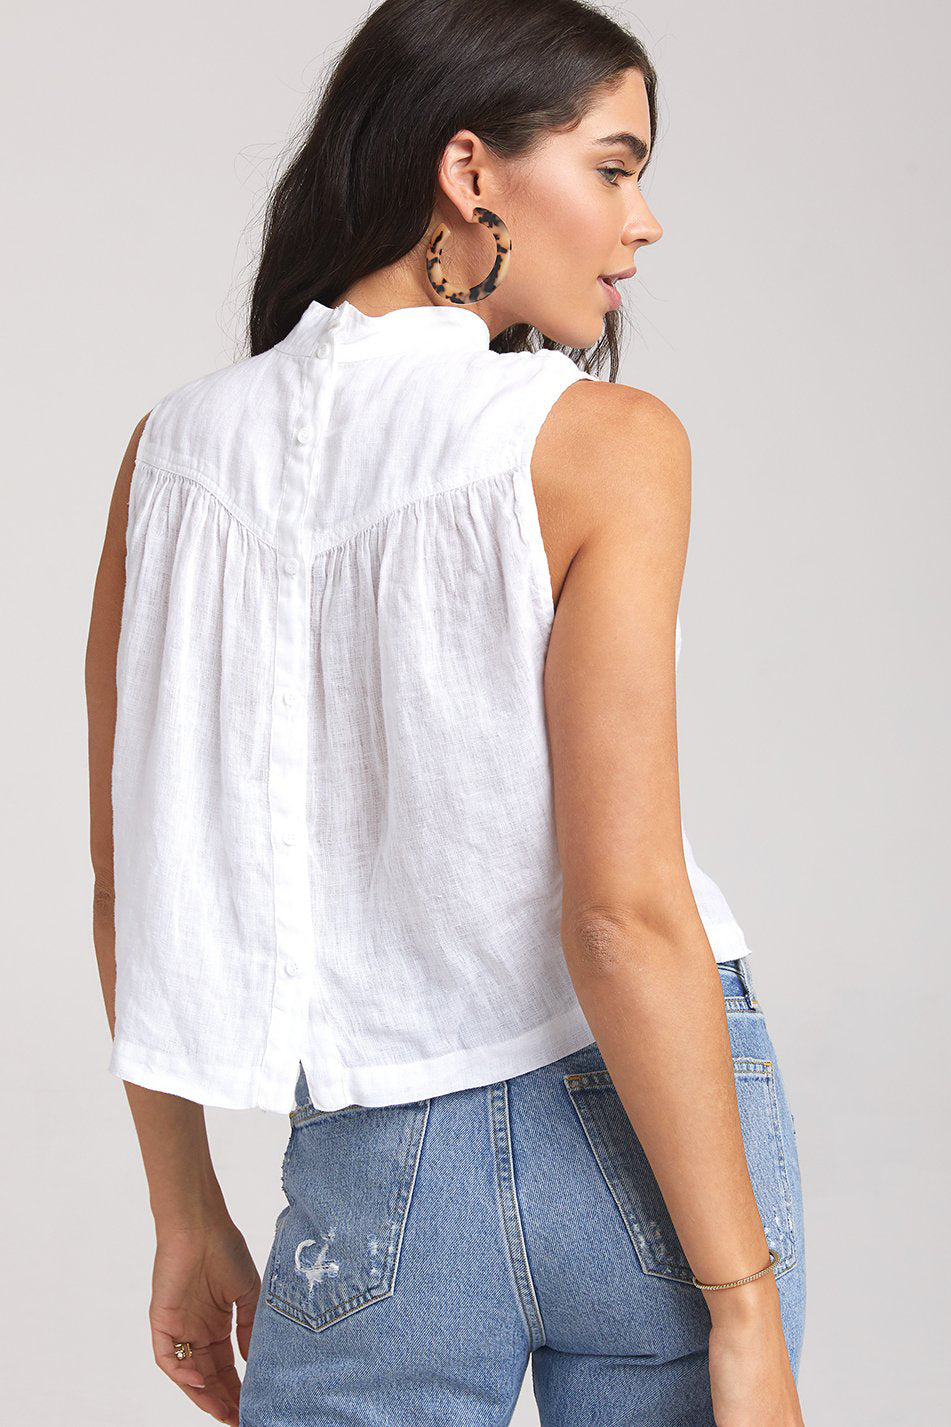 BELLA DAHL - Mock Neck Button Back Blouse online at PAYA boutique